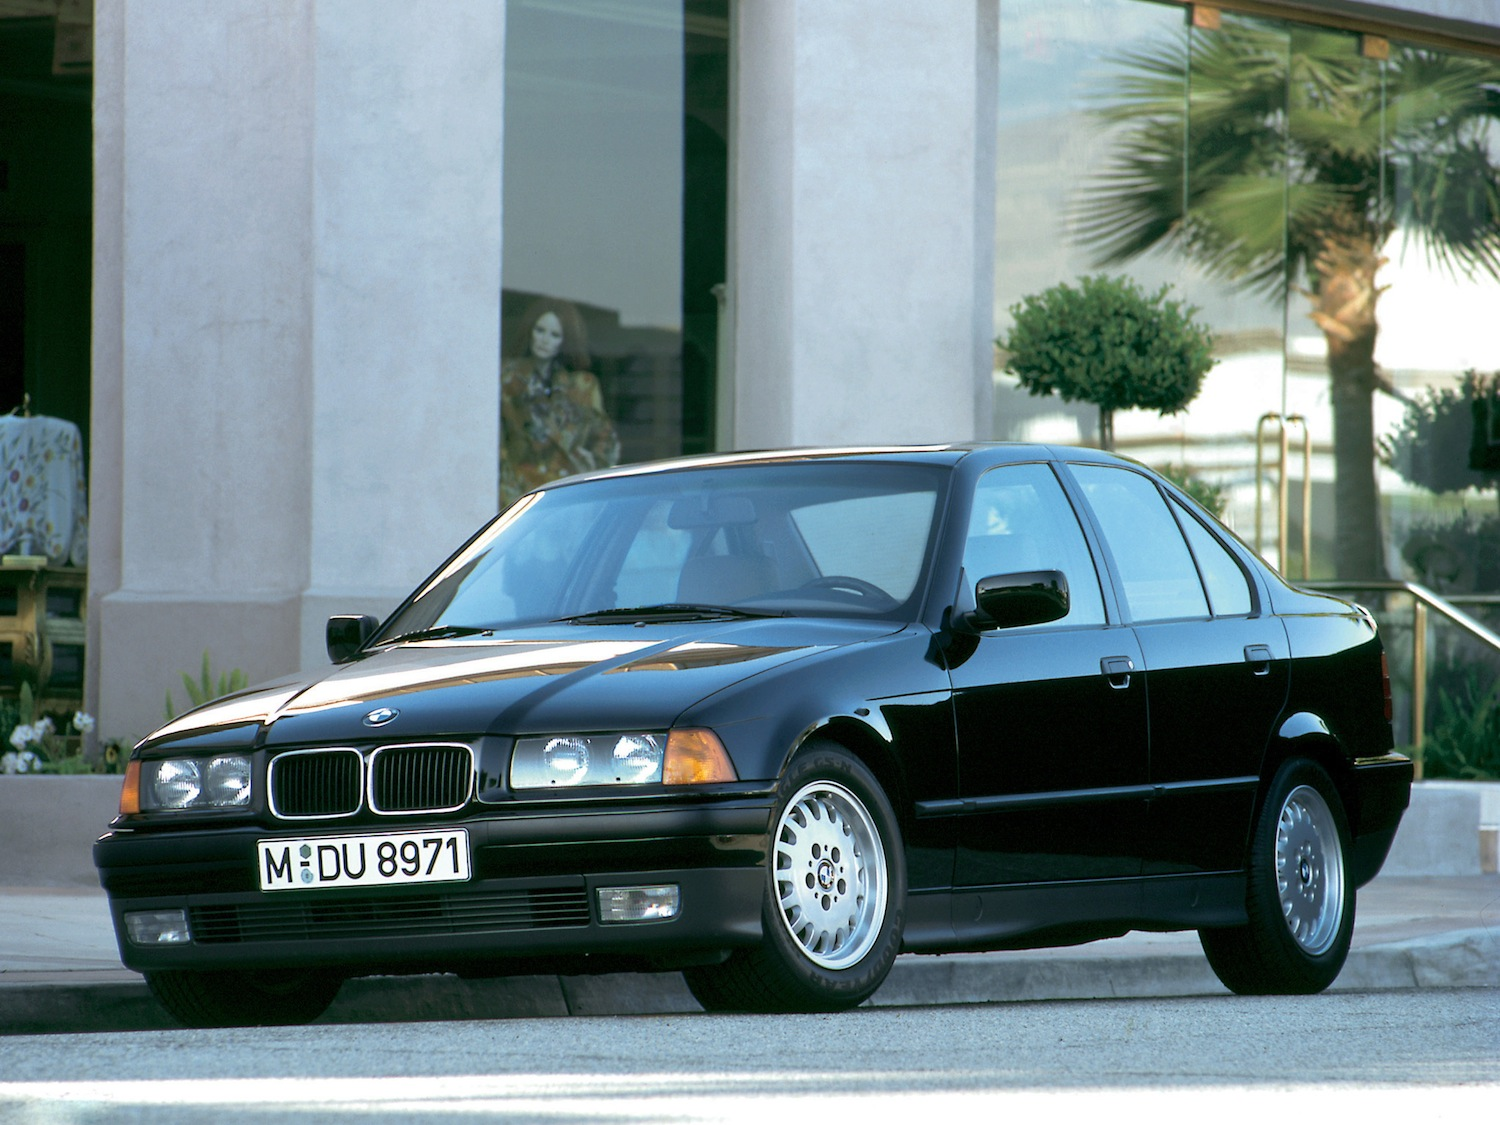 Index of /wp-content/uploads/photo-gallery/gallery/bmw-325i-e36